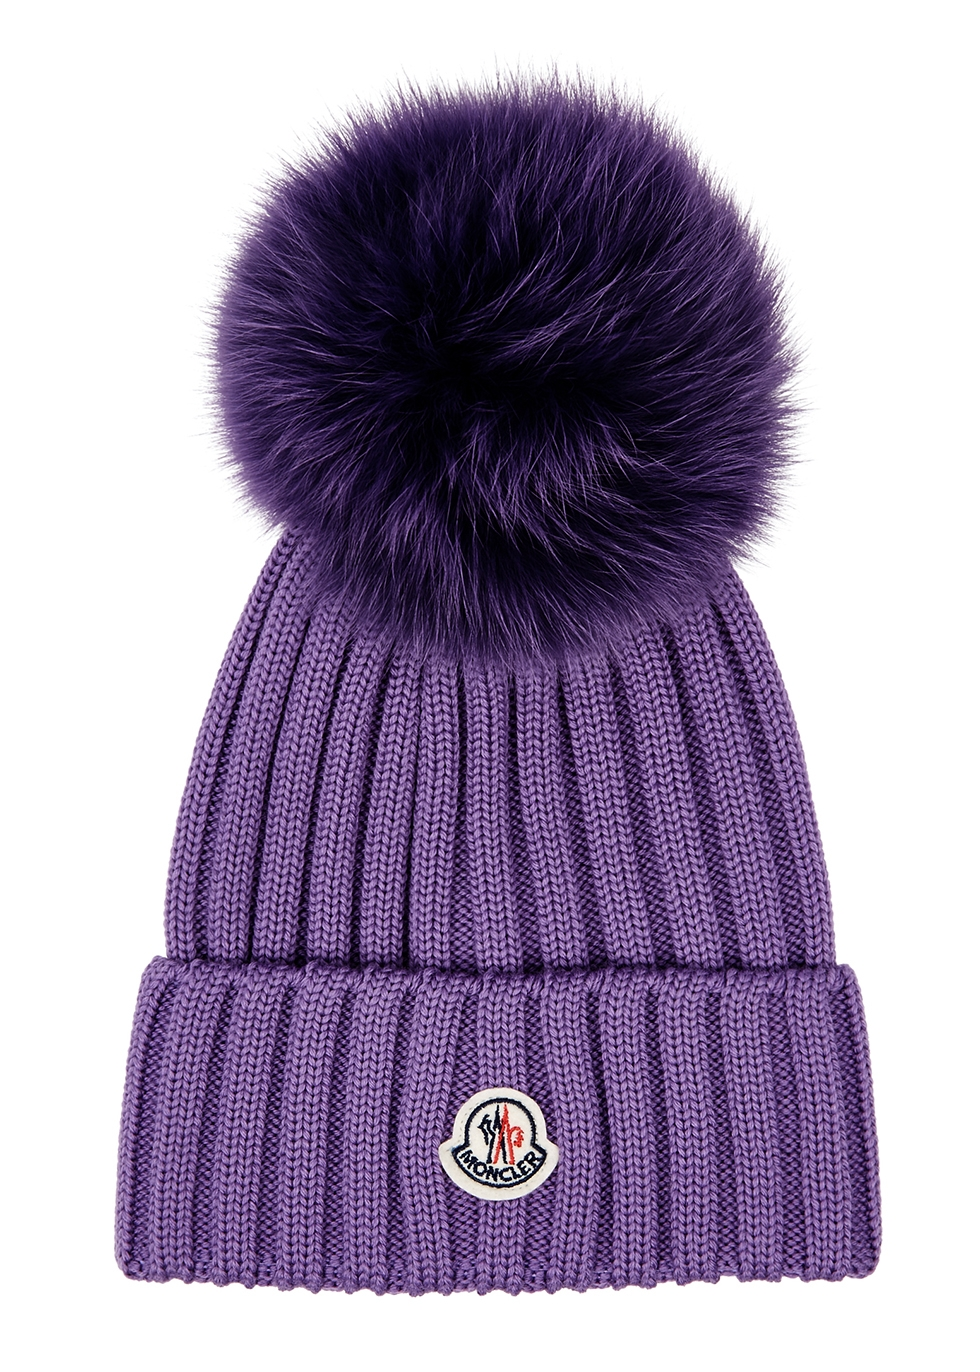 07161f5260619 Designer Beanies - Women s Luxury Hats - Harvey Nichols